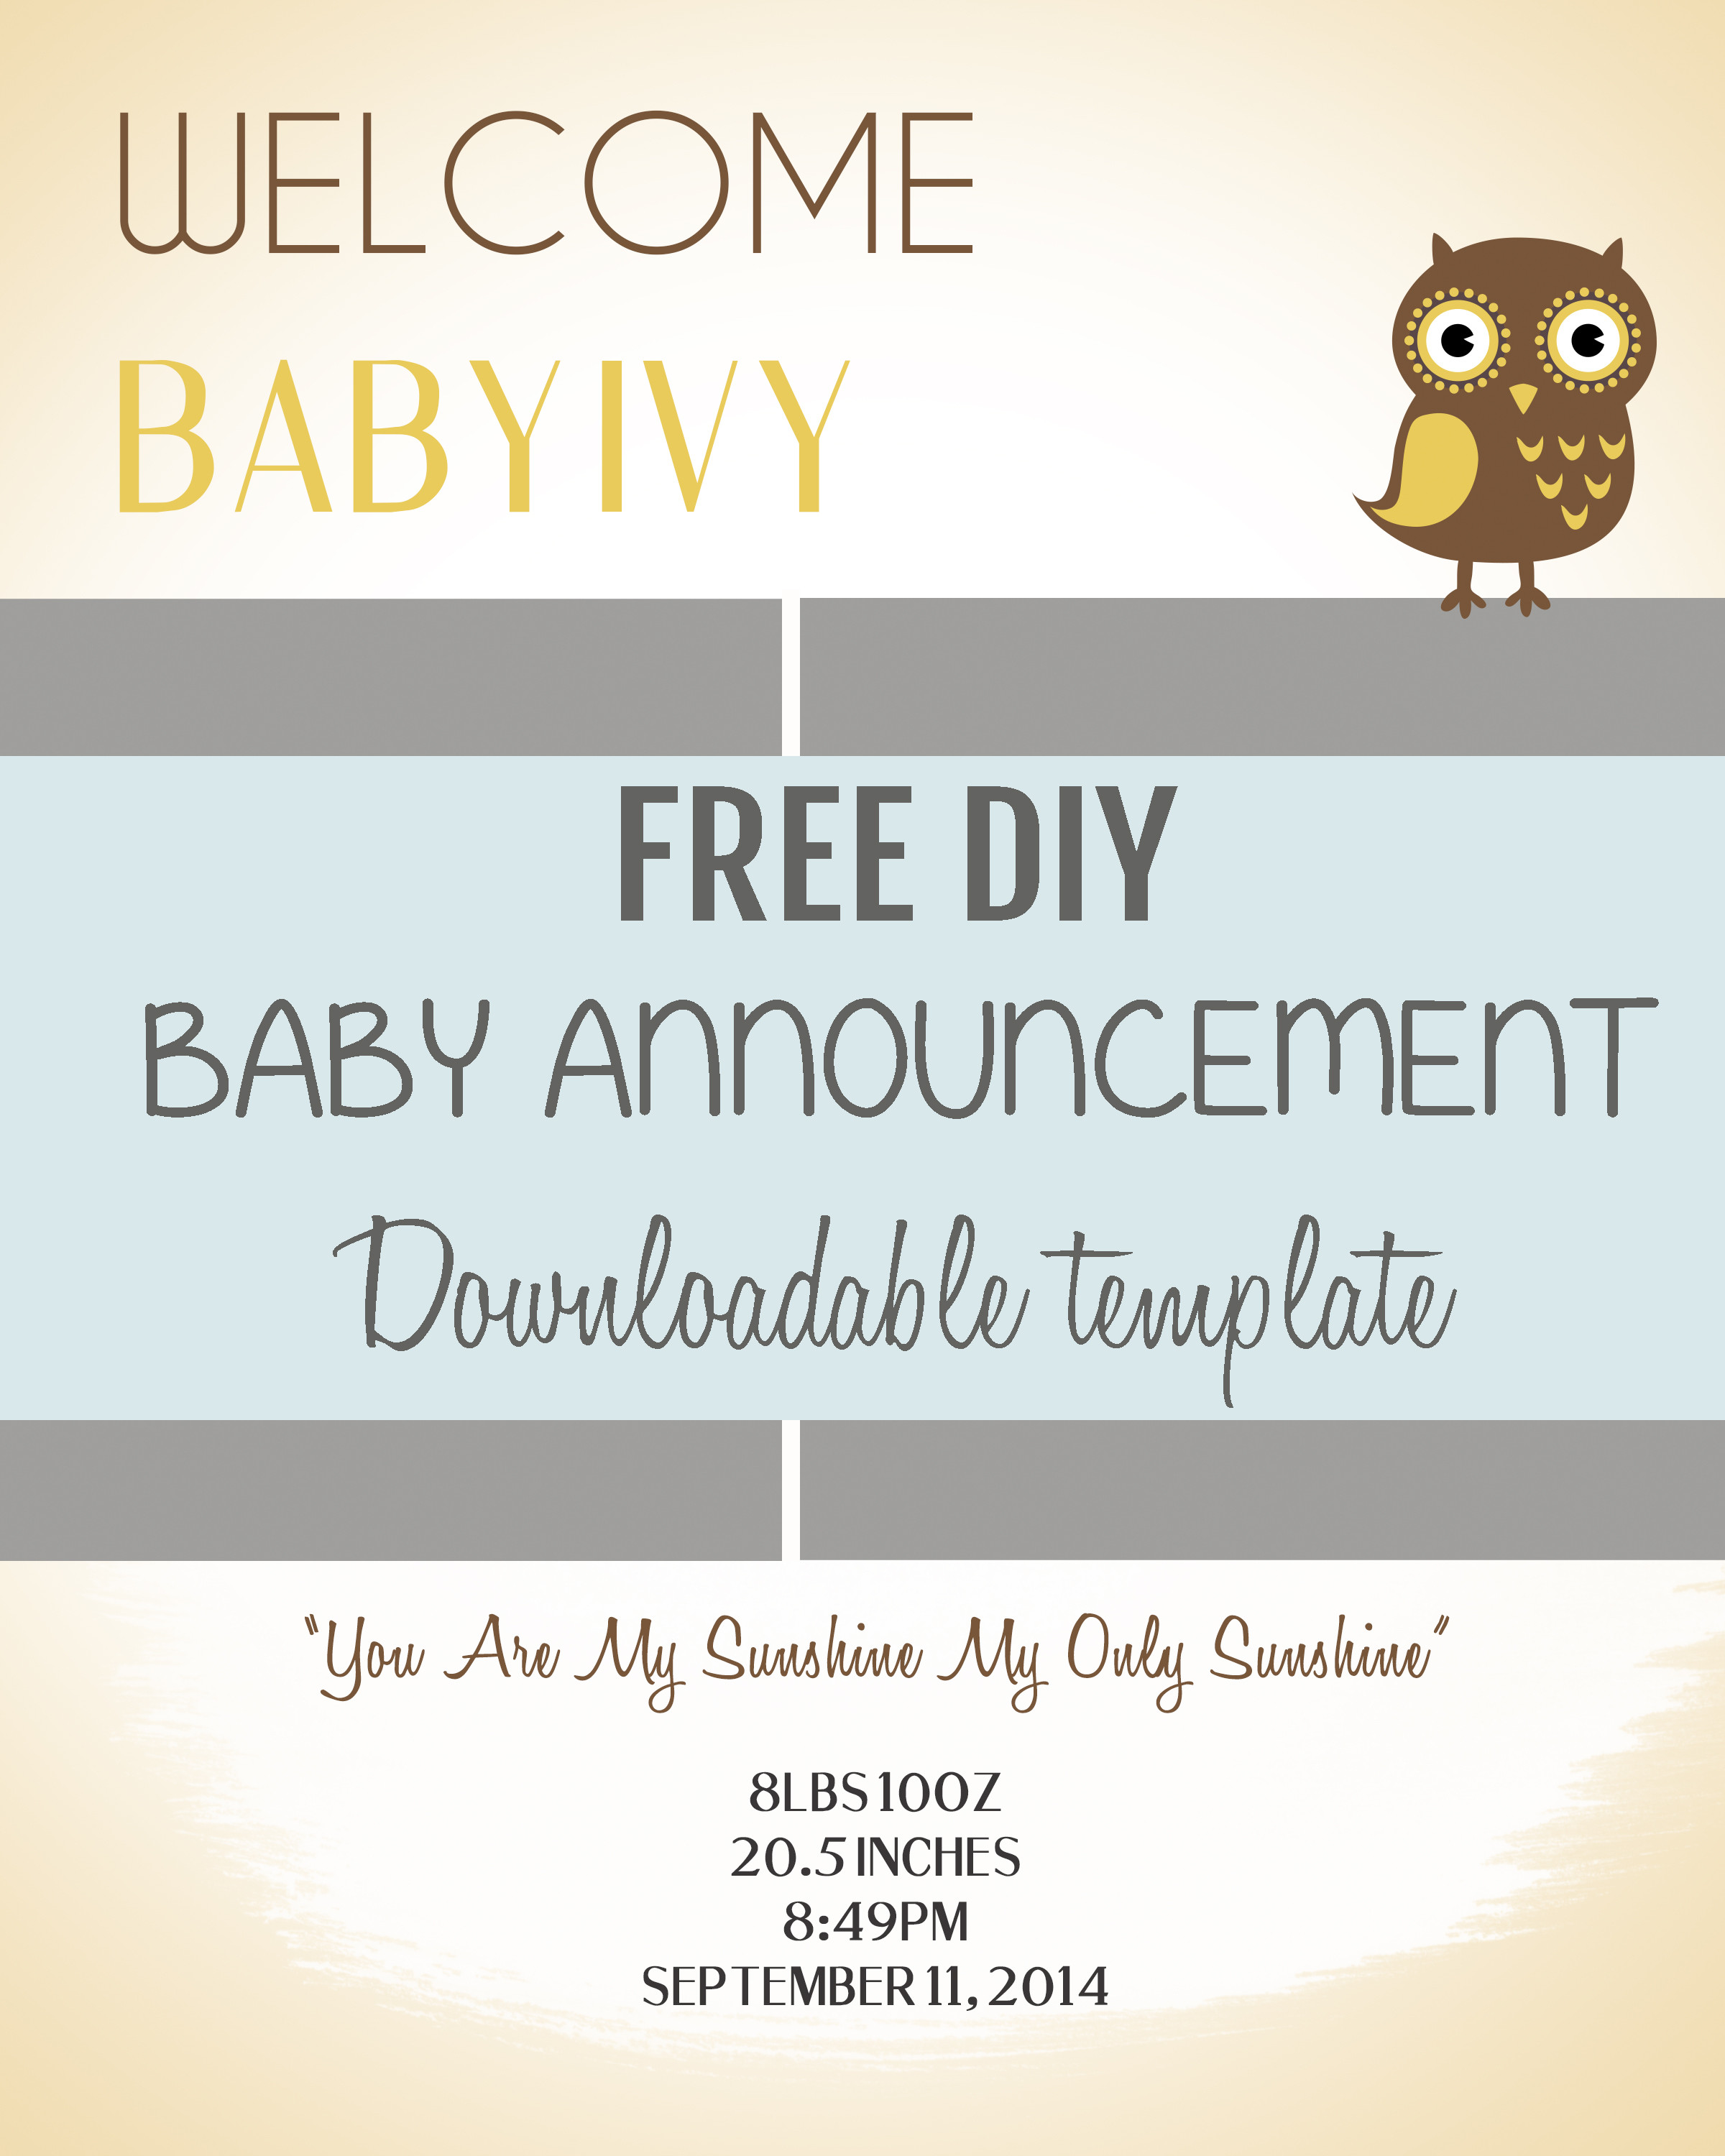 Best ideas about DIY Baby Announcement . Save or Pin DIY Baby Announcement Template Free PSD Download Now.